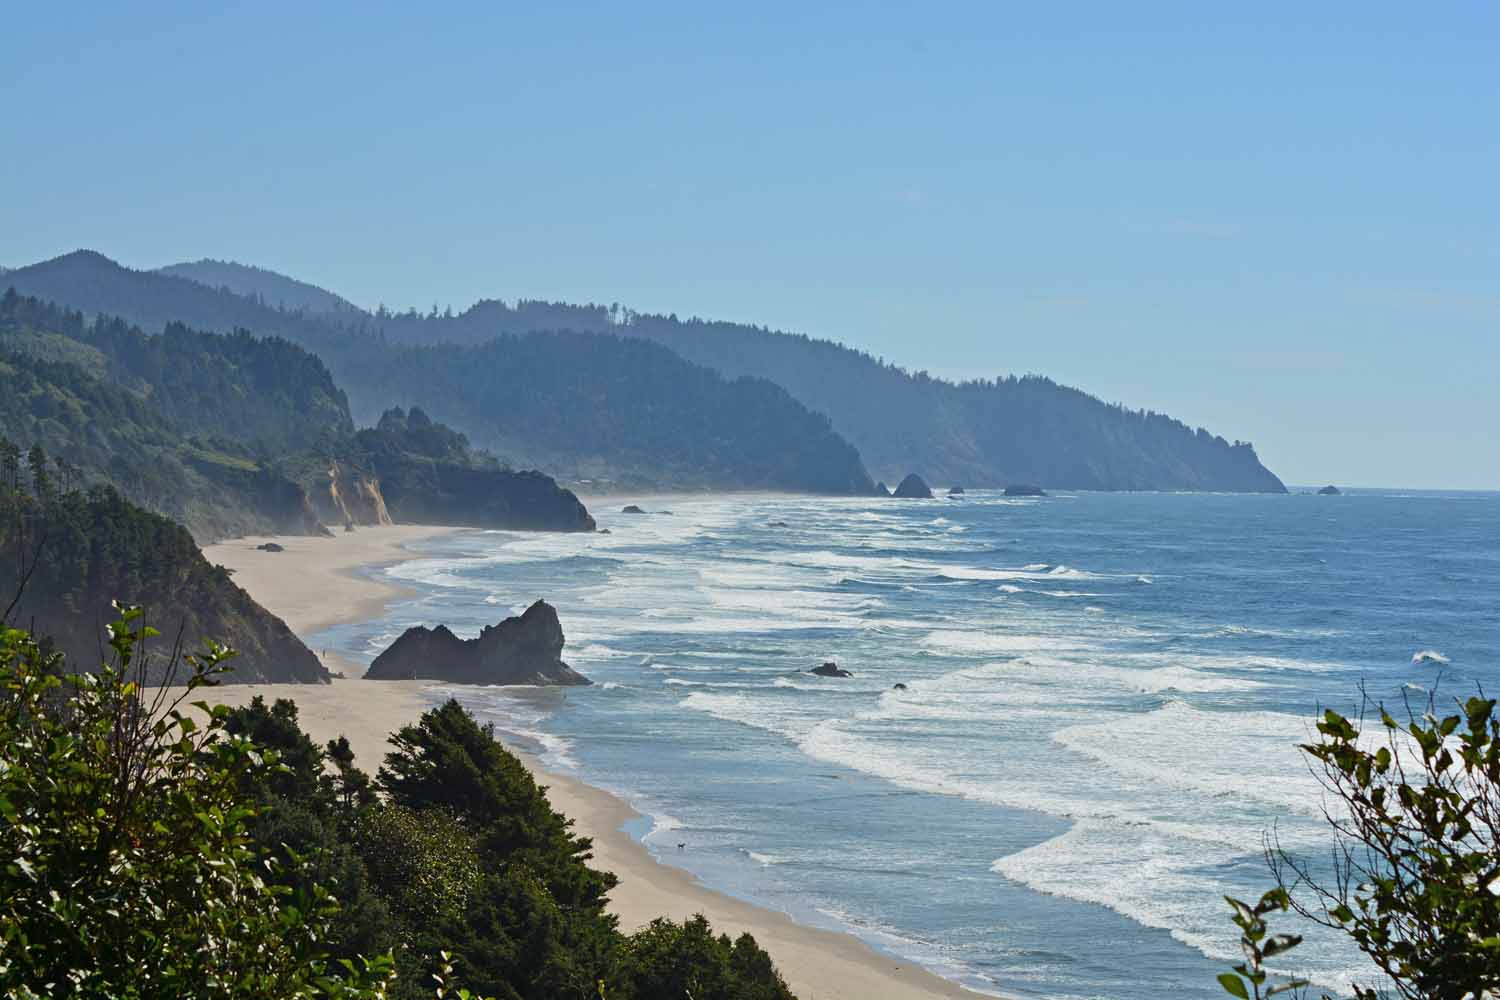 The Oregon coast is gorgeous.  The drive on 101 heading south was a rewarding experience.